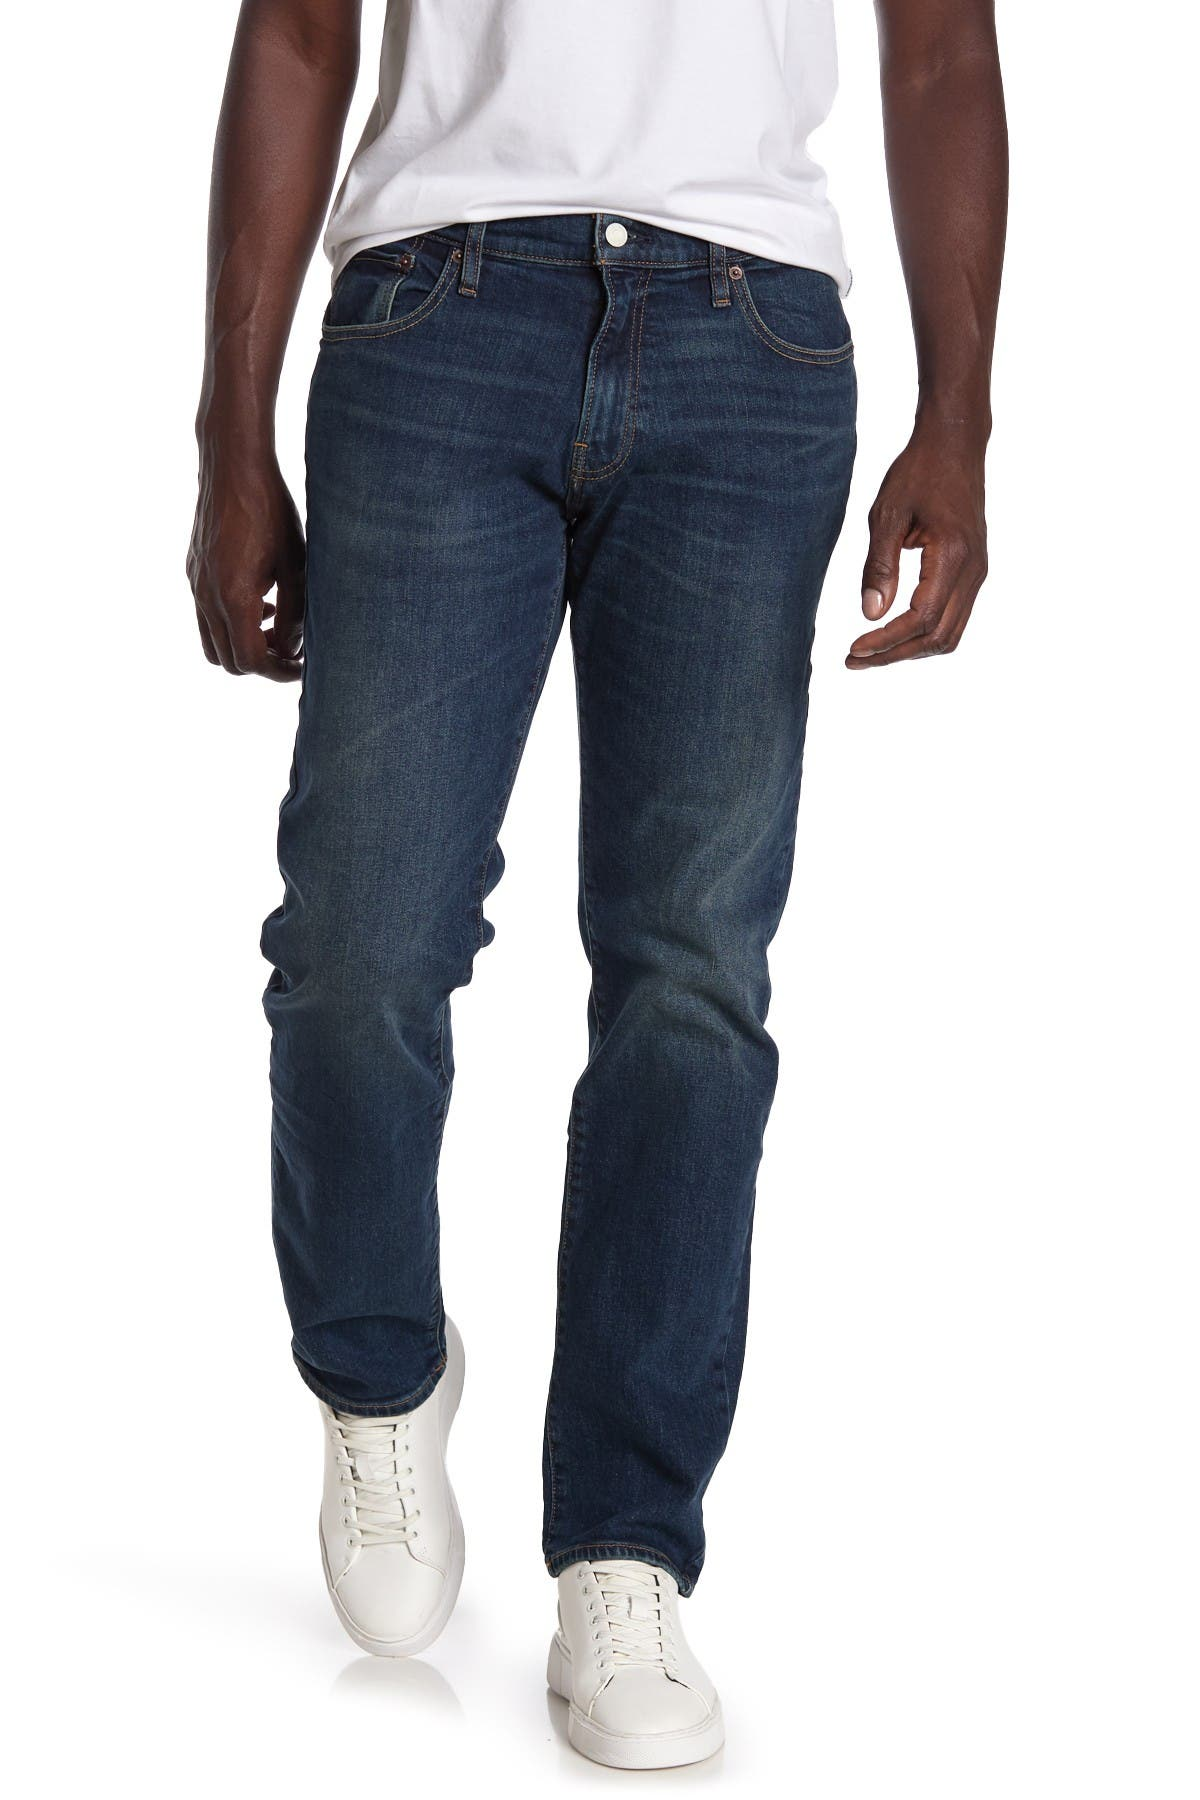 "Image of Lucky Brand 221 Straight Jeans - 30-34"" Inseam"